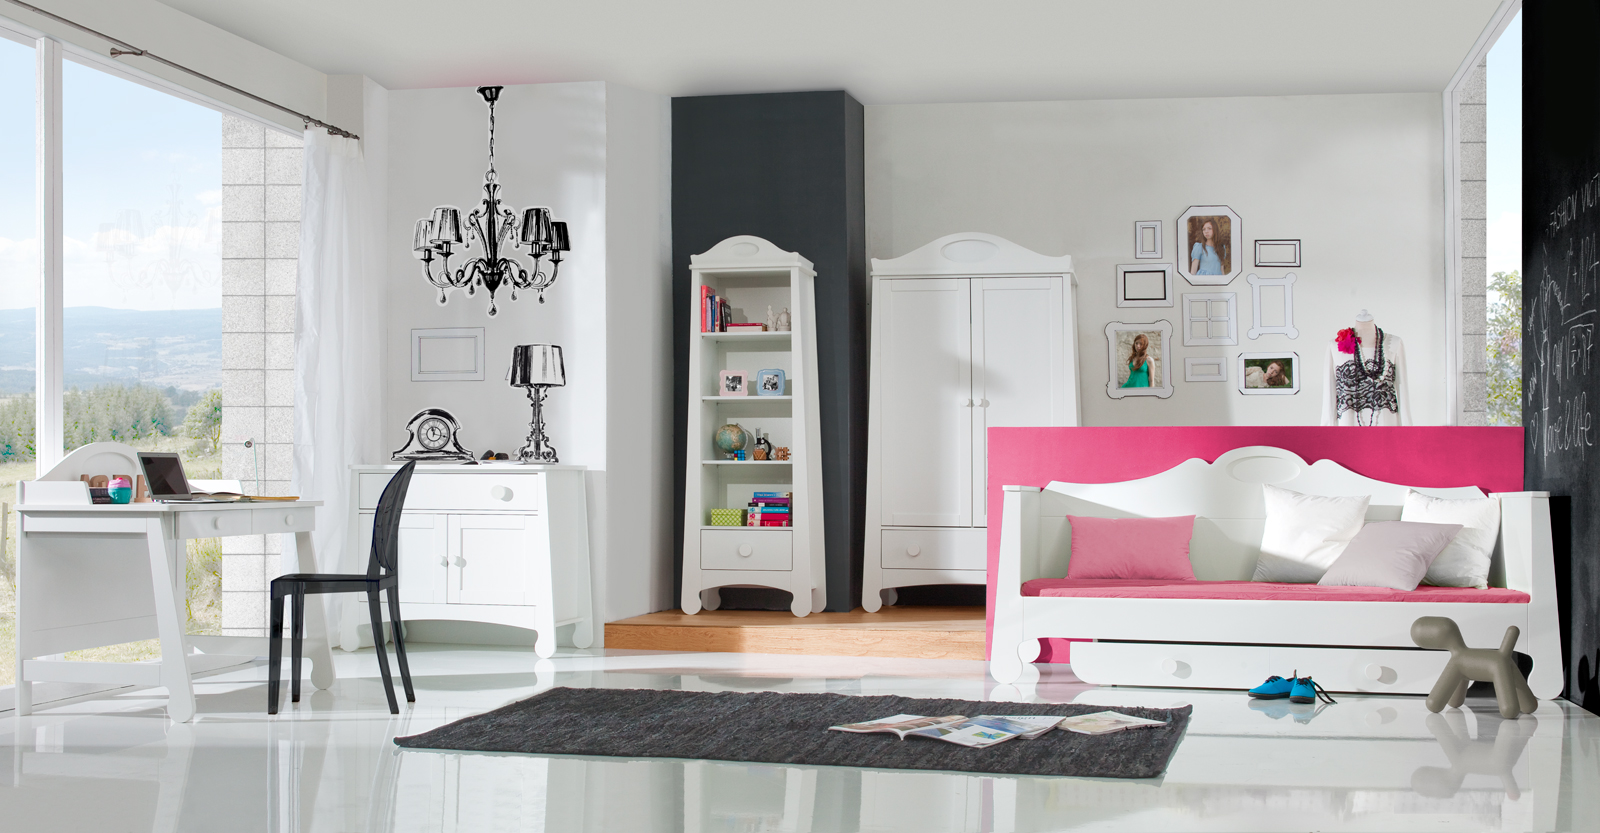 pinio parole fille gar on 5 meubles lit 200x90 commode armoire biblioth que bureau baby. Black Bedroom Furniture Sets. Home Design Ideas